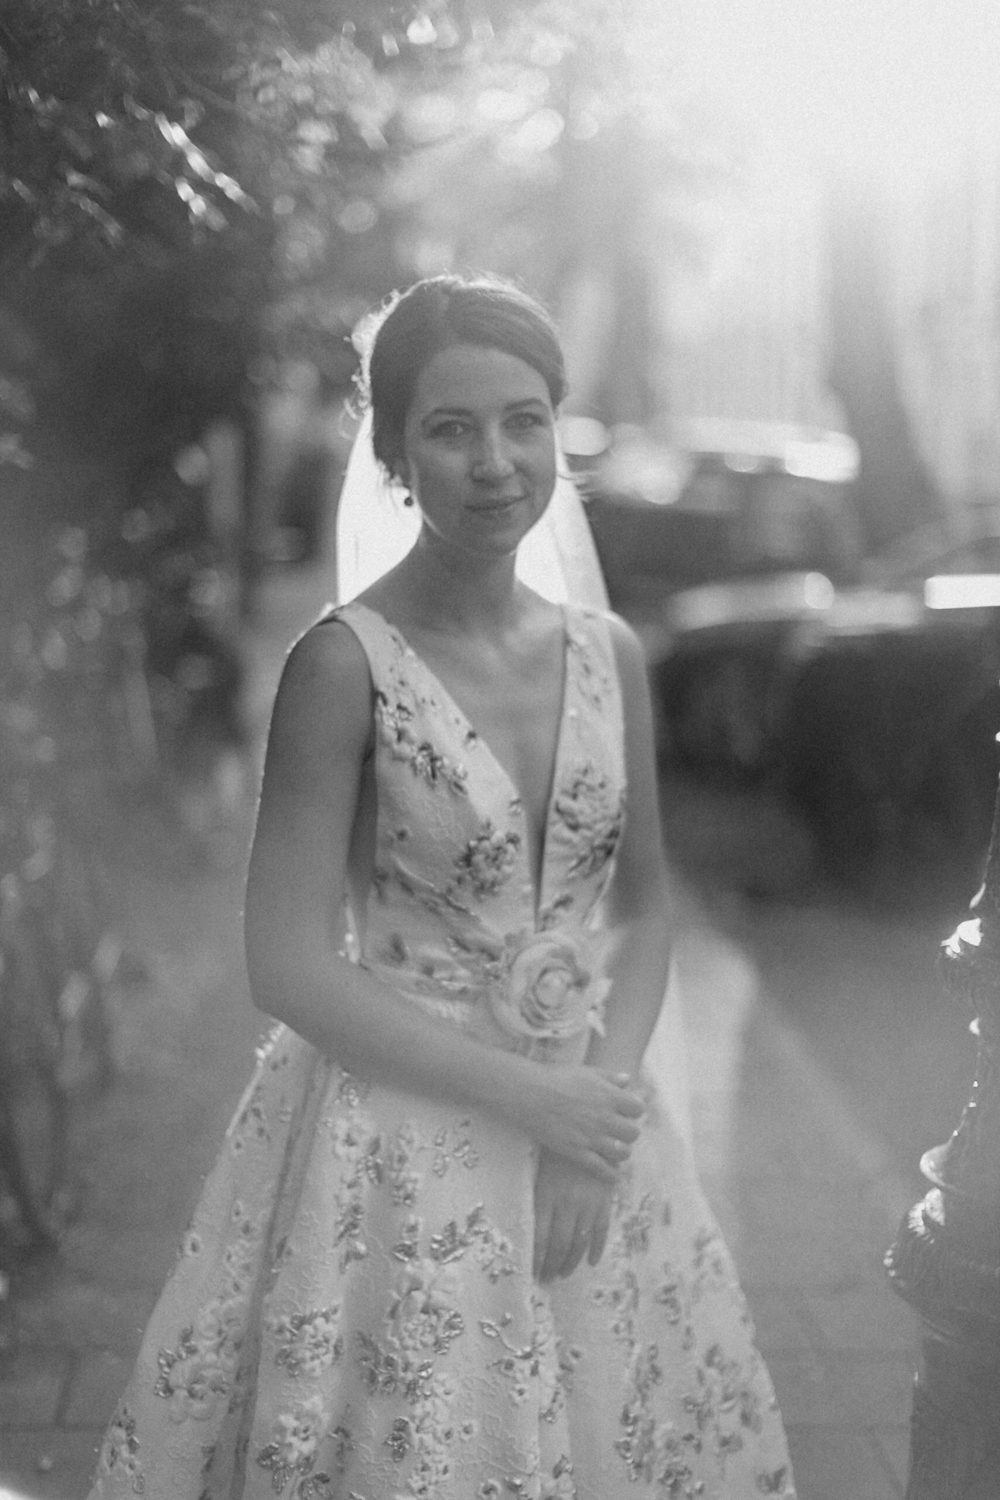 Portrait of bride in the streets of Amsterdam